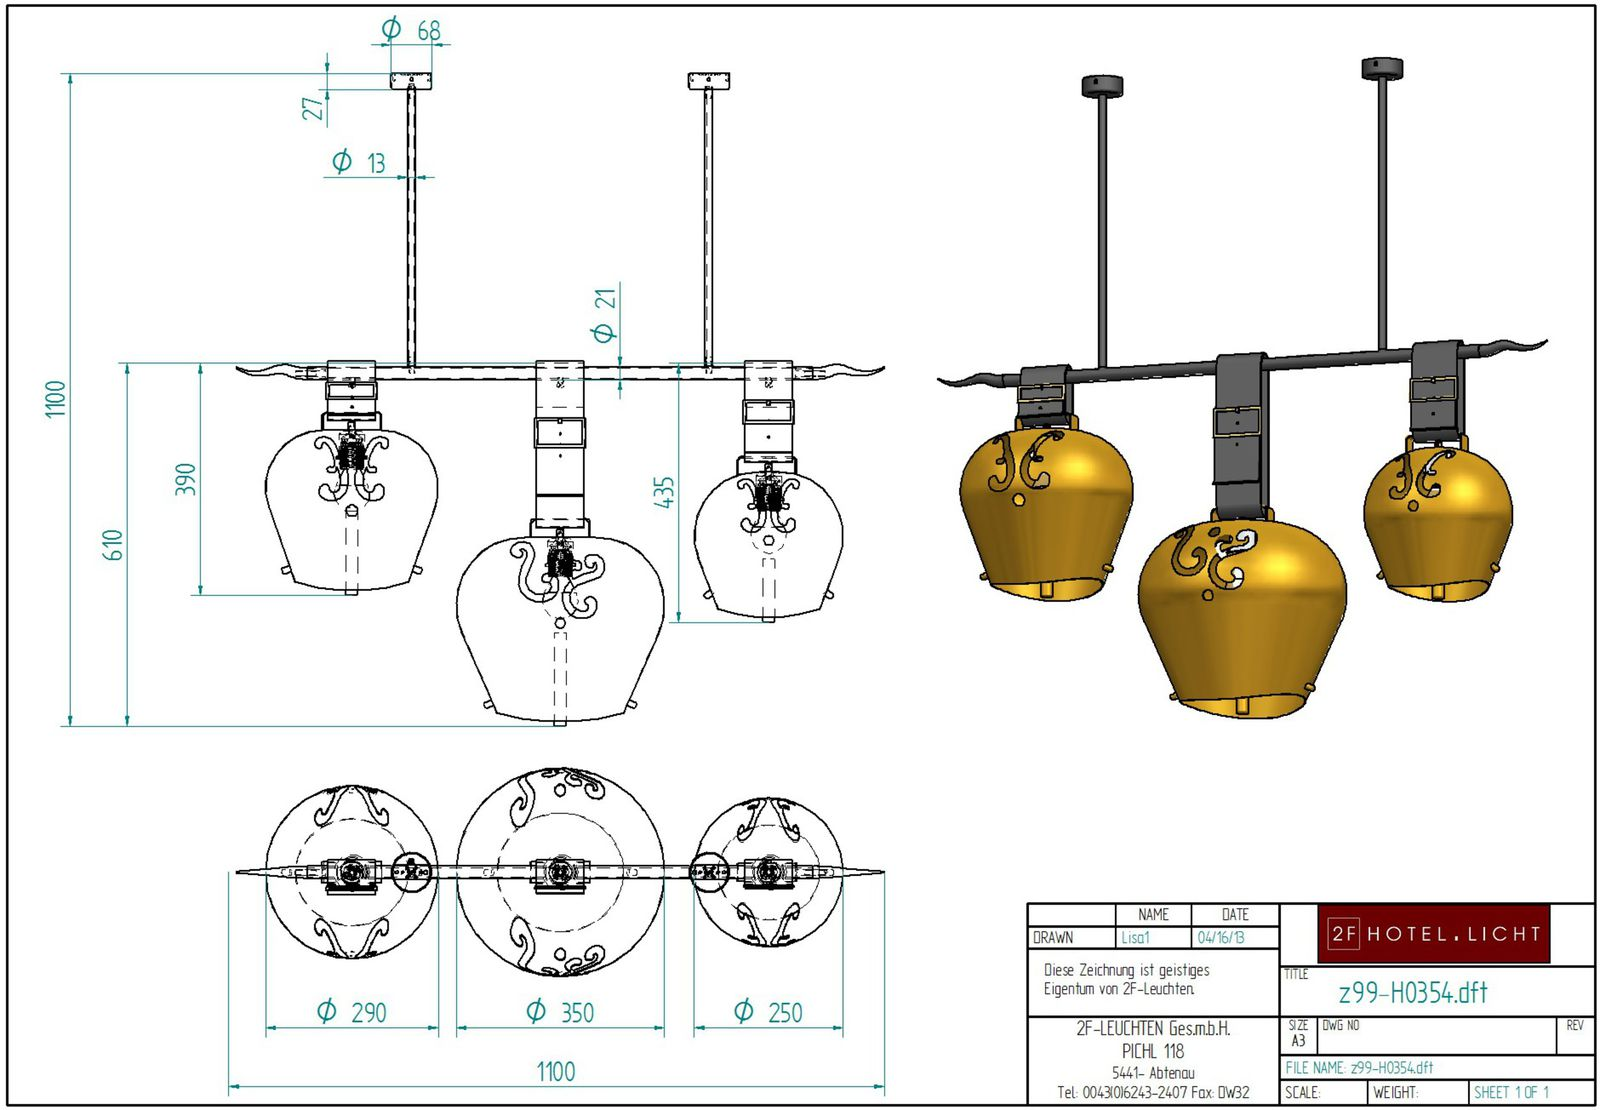 Hanging lamp, L=1000mm, B:Ø350mm, H=1000mm, surface: Metal SSW,black, techn. Date: 3xE27, 9W LED